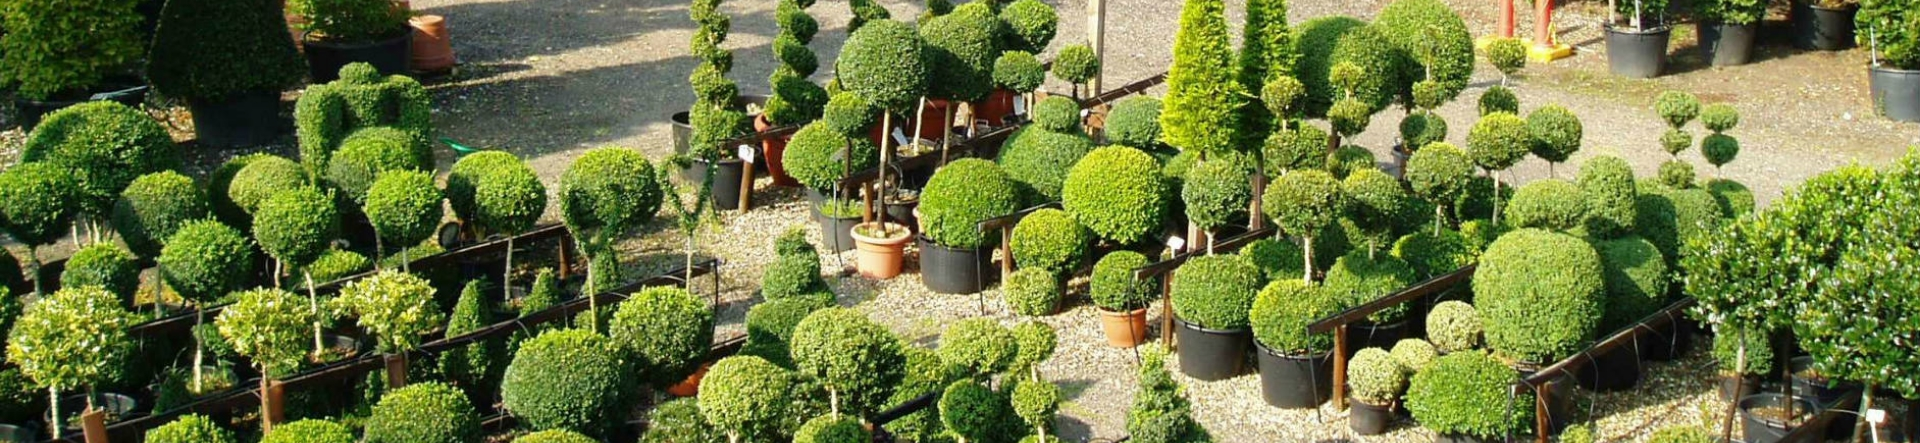 Crown Topiary is the largest topiary nursery in the UK